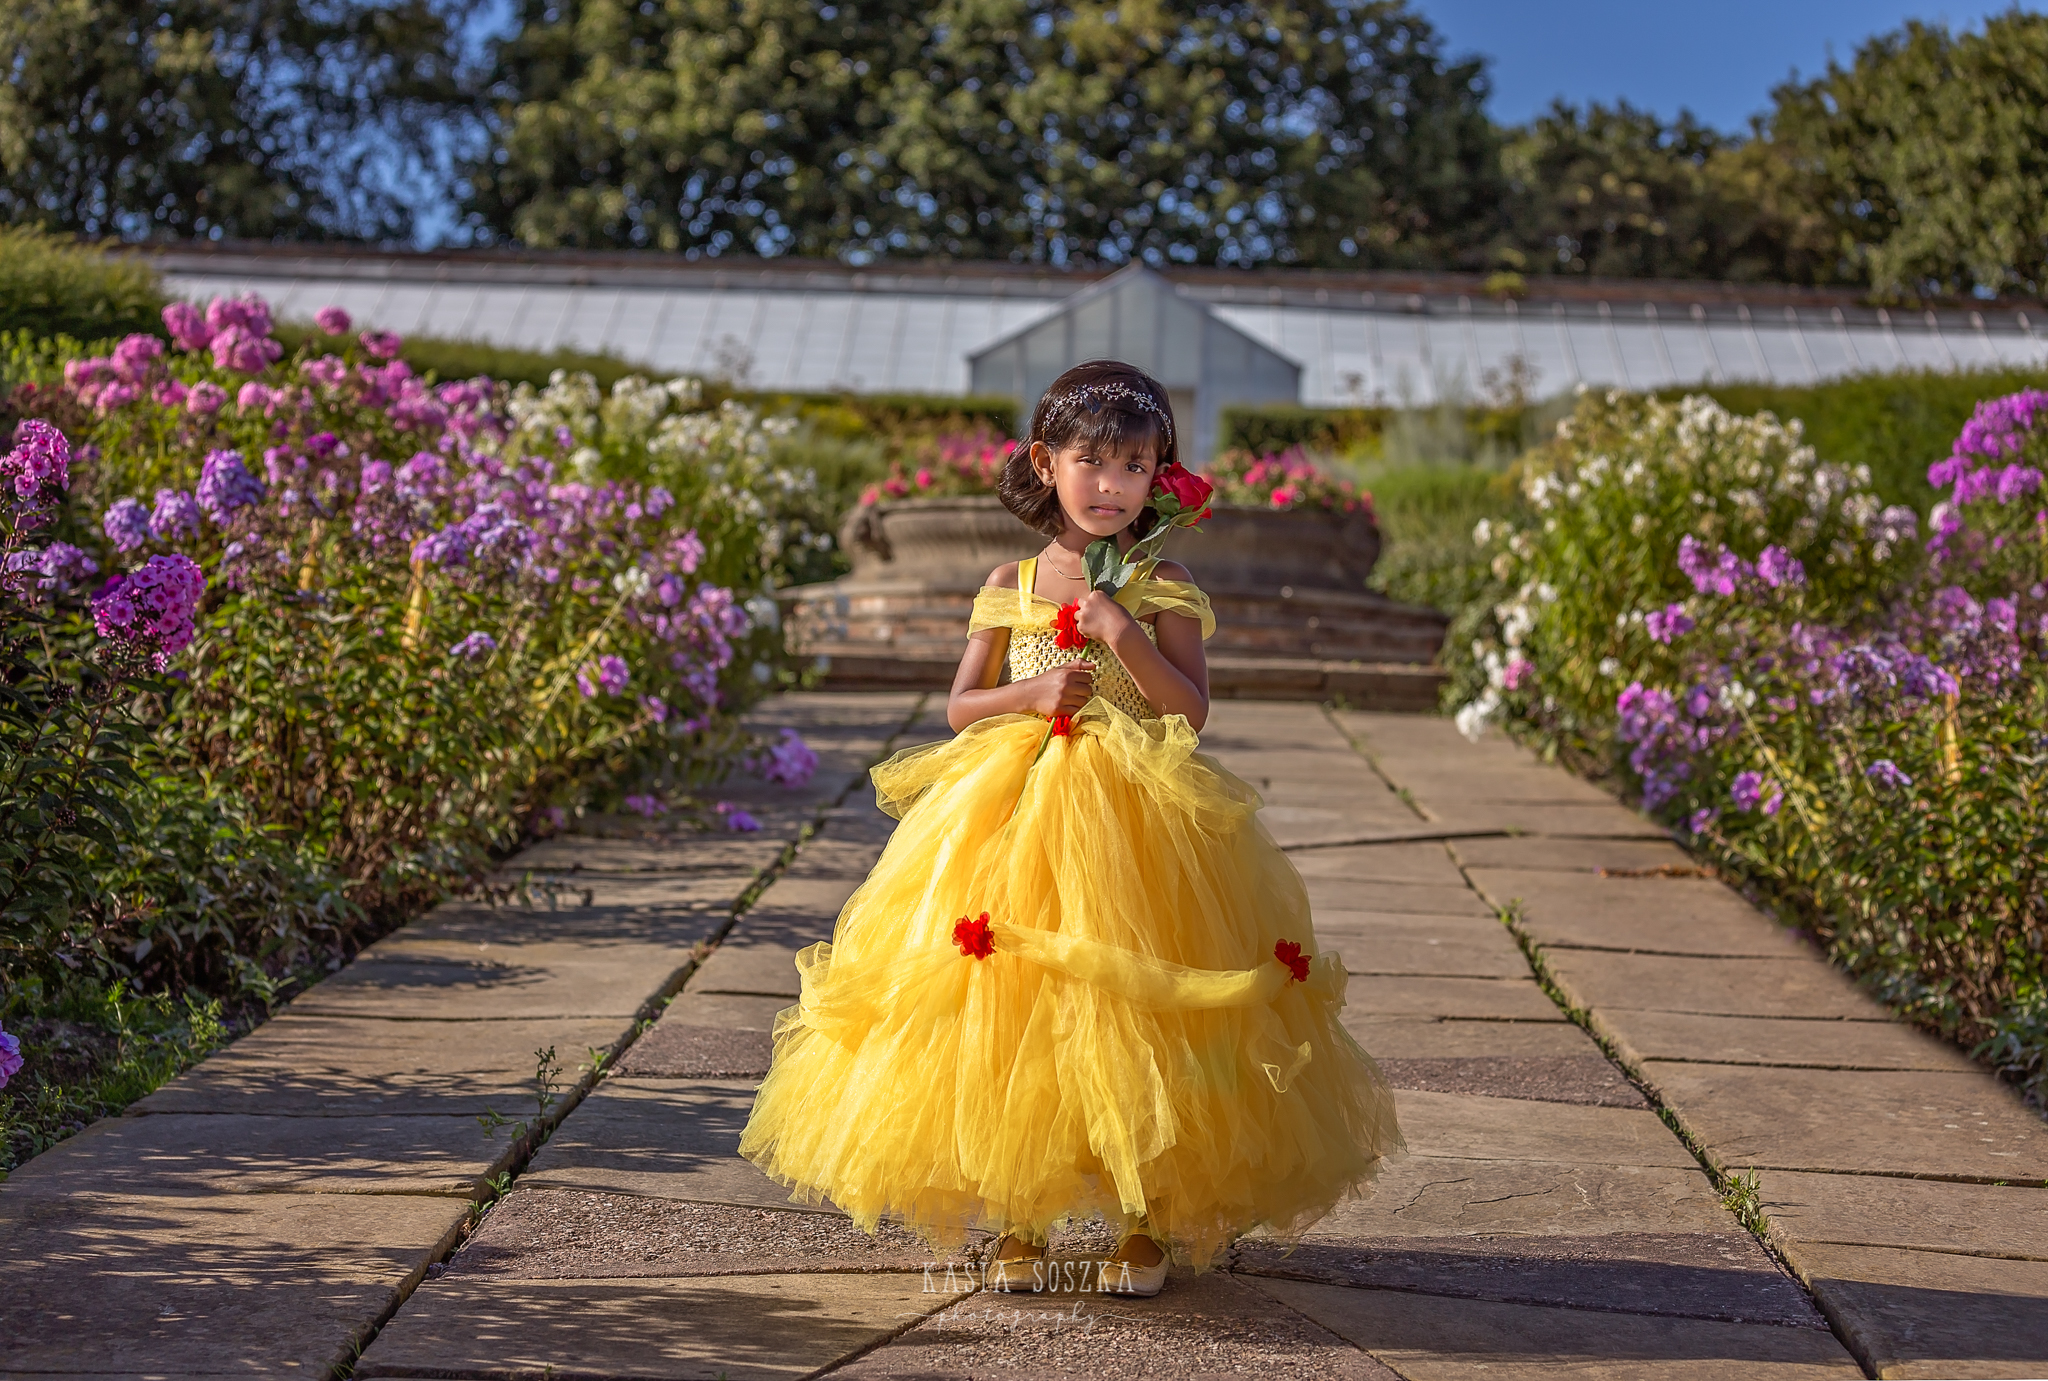 Child photography Leeds, child outdoor princess session Leeds, Yorkshire: beautiful little girl in a yellow princess dress posing for a photo in a garden